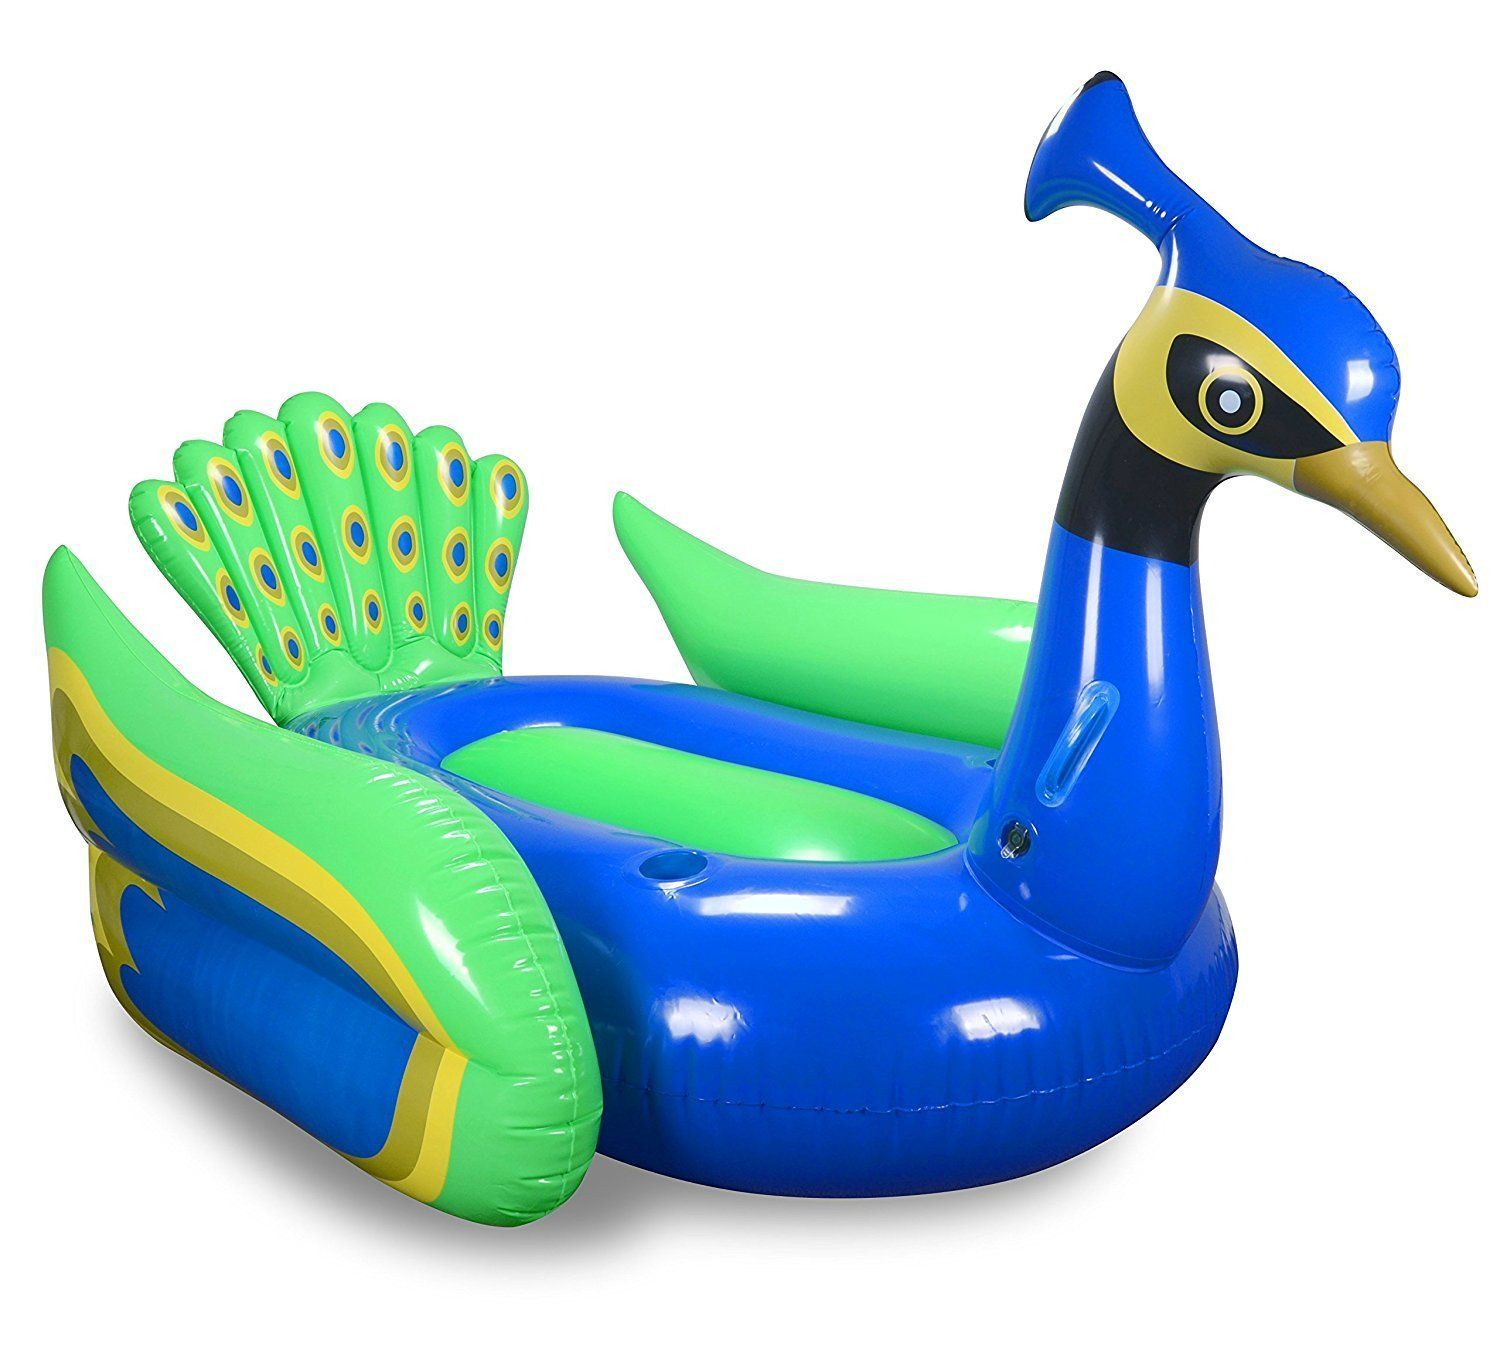 Flotadores Para Piscinas Peacock Inflatable Premium Quality Giant Size Pool Float